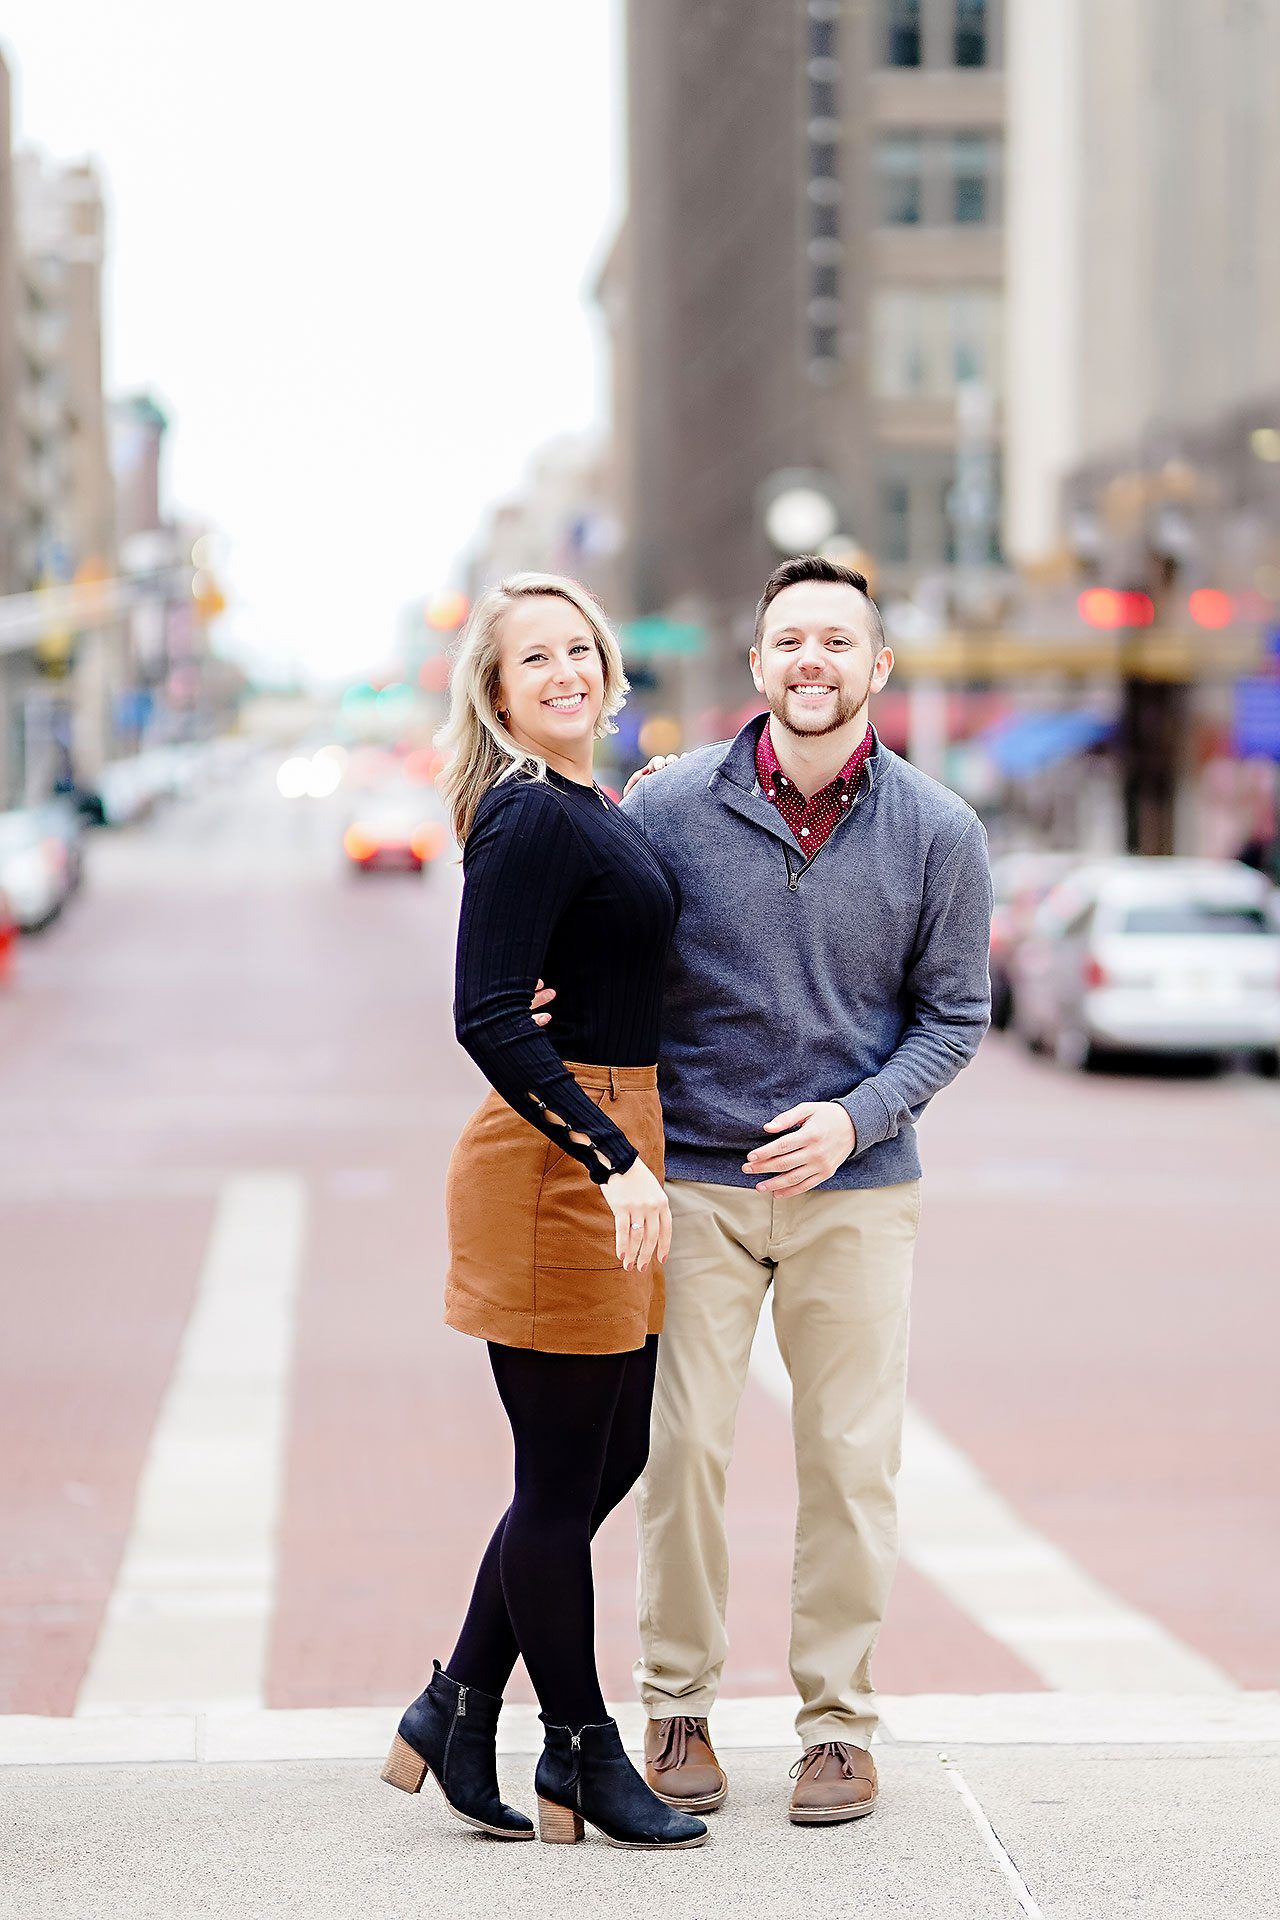 Kristen Jonny Indianapolis Downtown Engagement Session 122